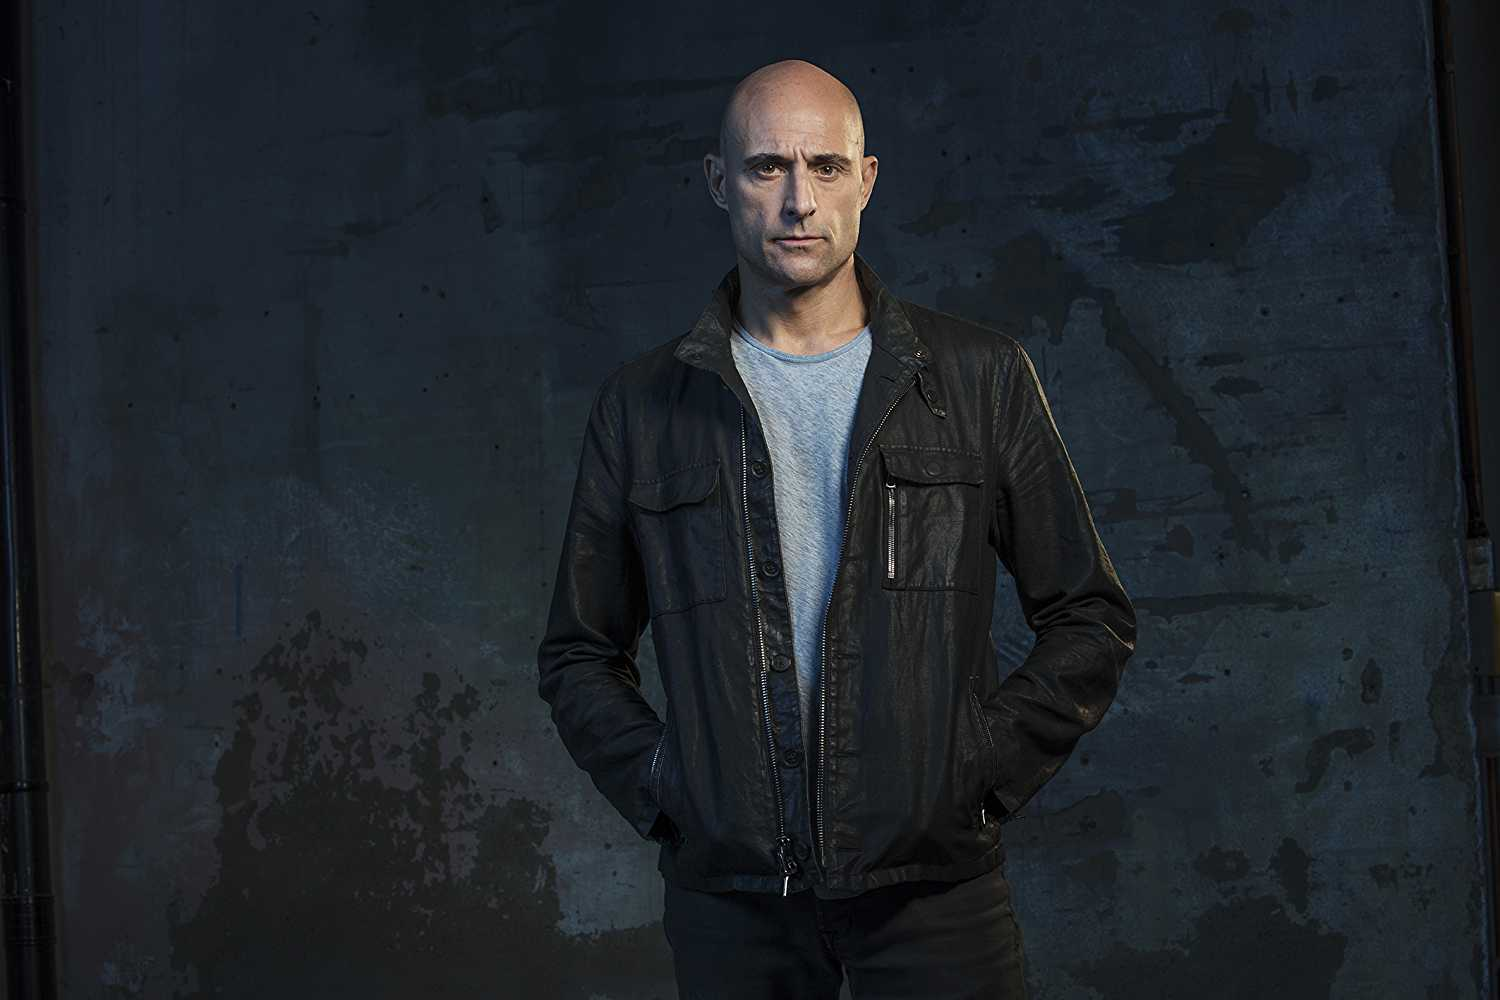 Mark Strong's Max Easton is one of the few positives about the show (Source: IMDb)